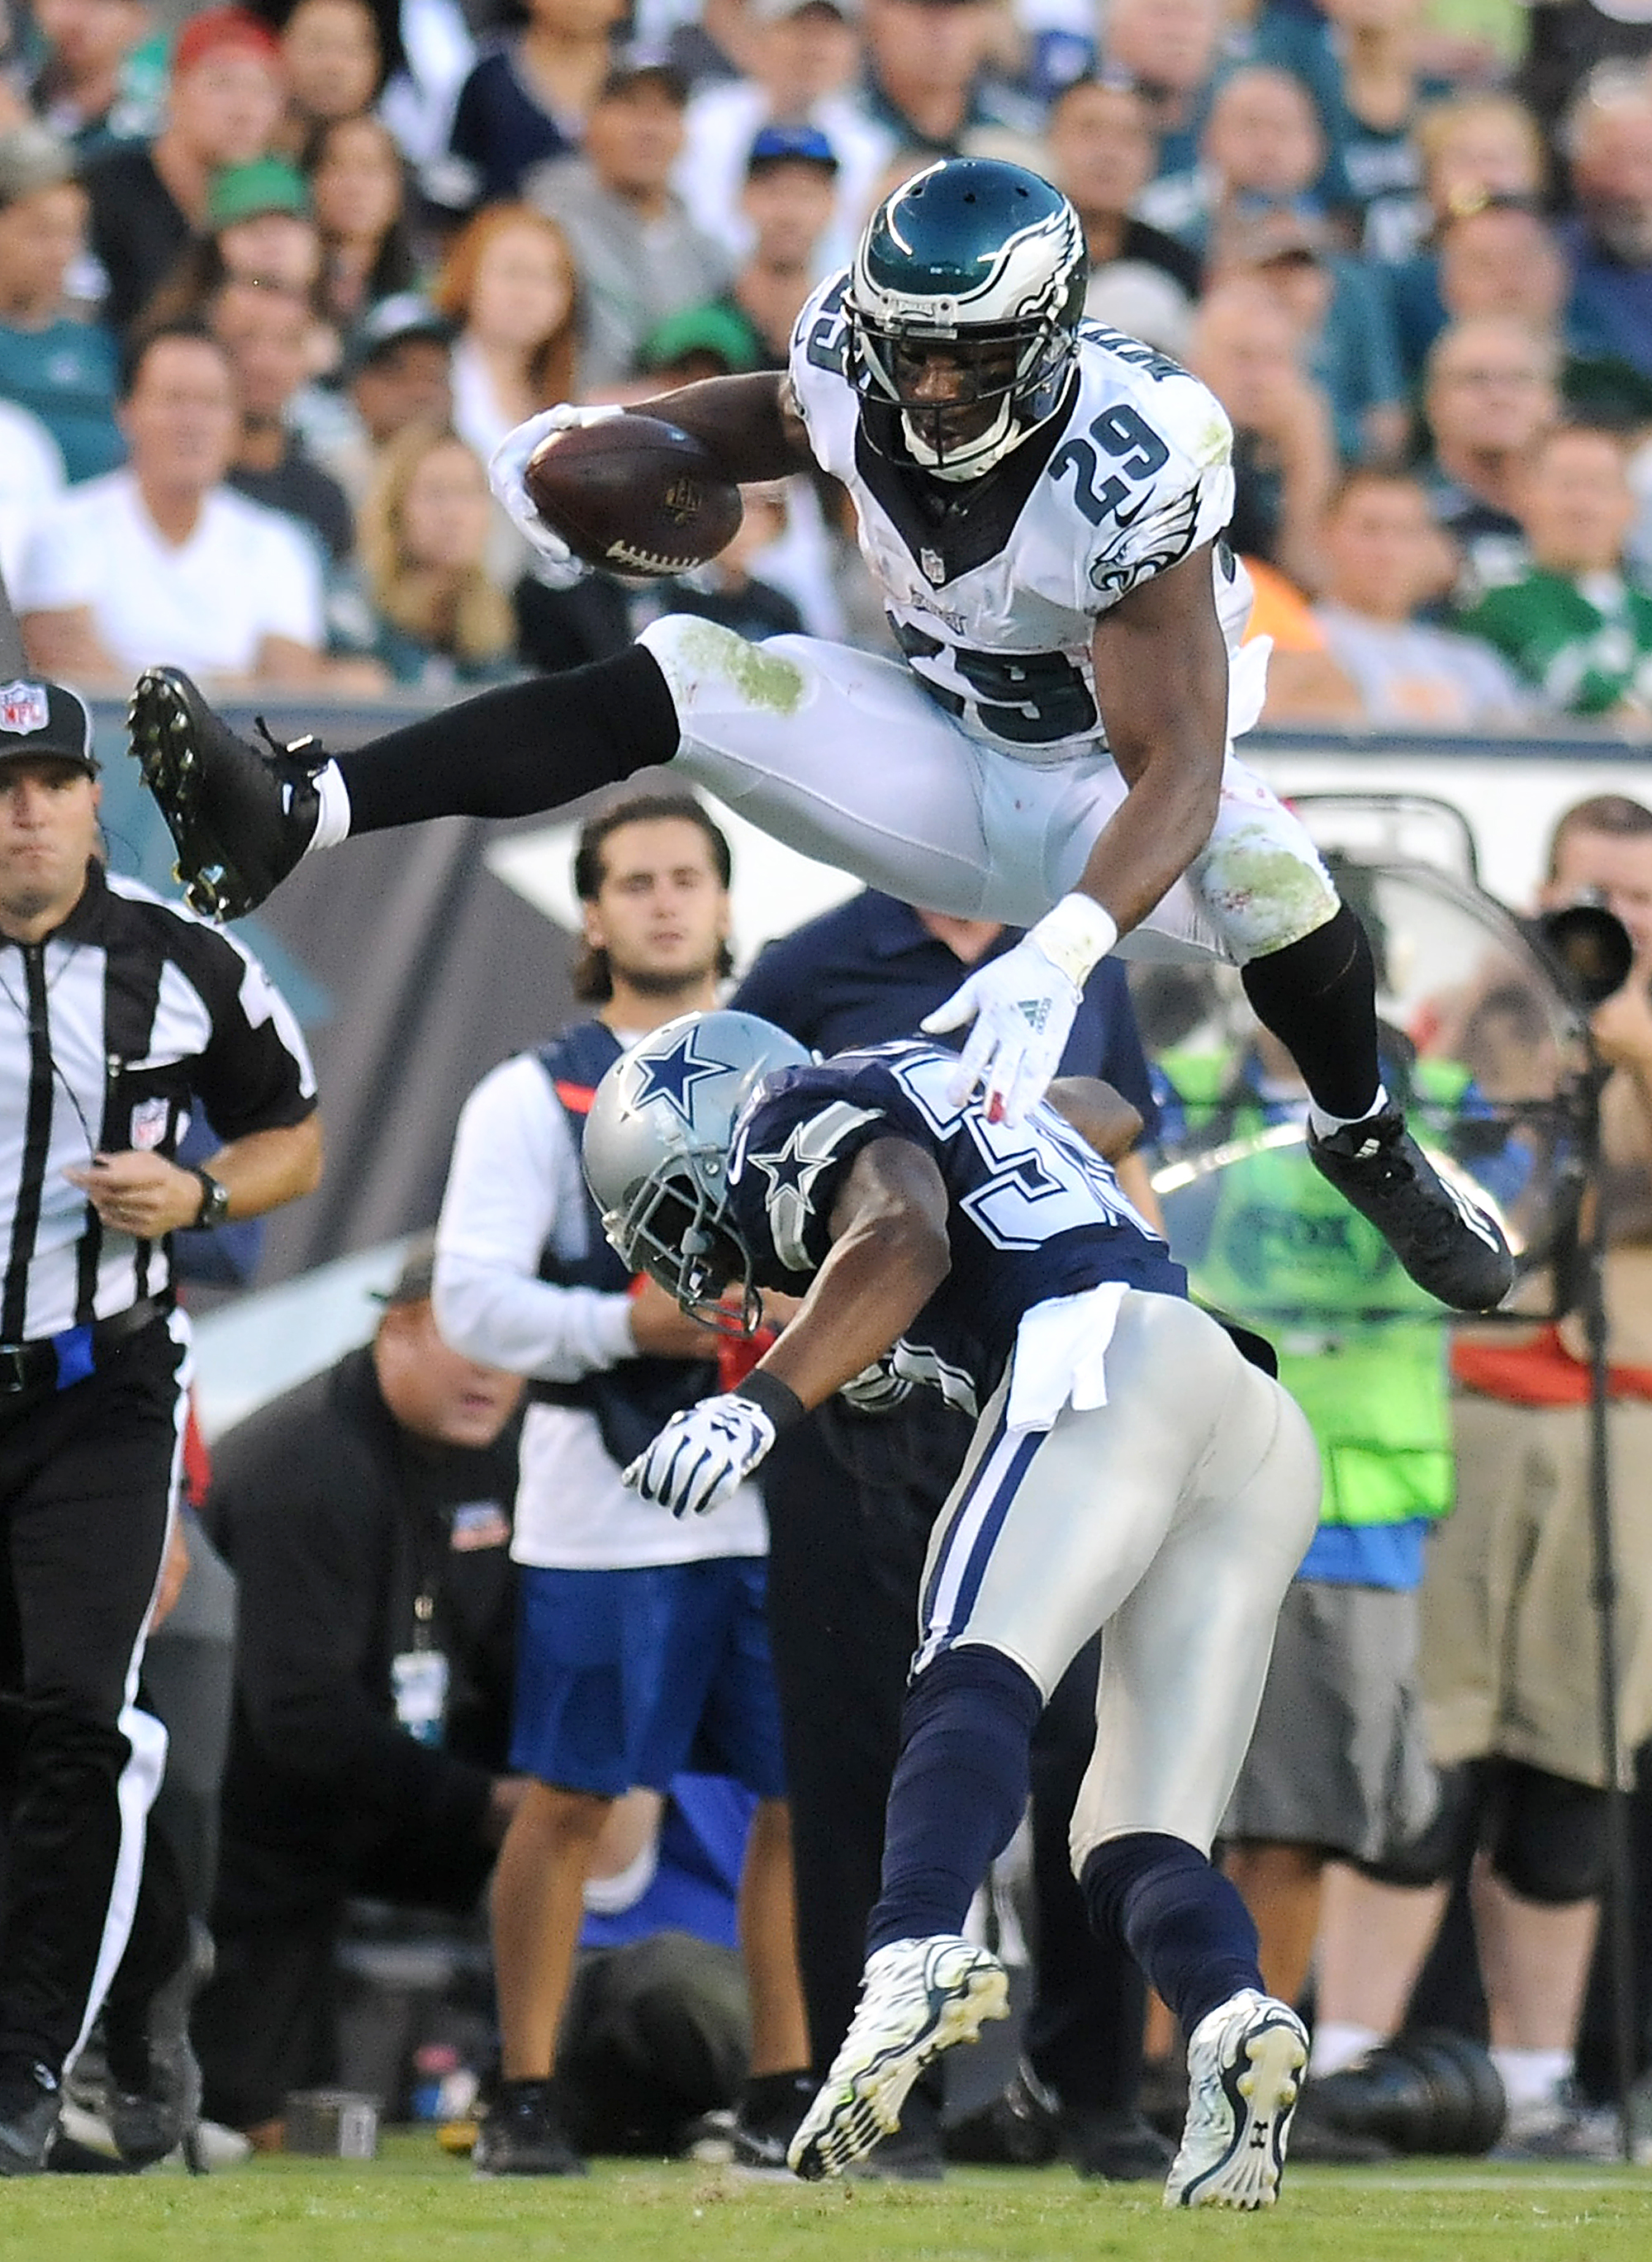 Philadelphia's DeMarco Murray (29) leaps over Dallas Cowboy Brandon Carr (39) during their game on Sunday, Sept. 20, 2015 at Lincoln Financial Field.